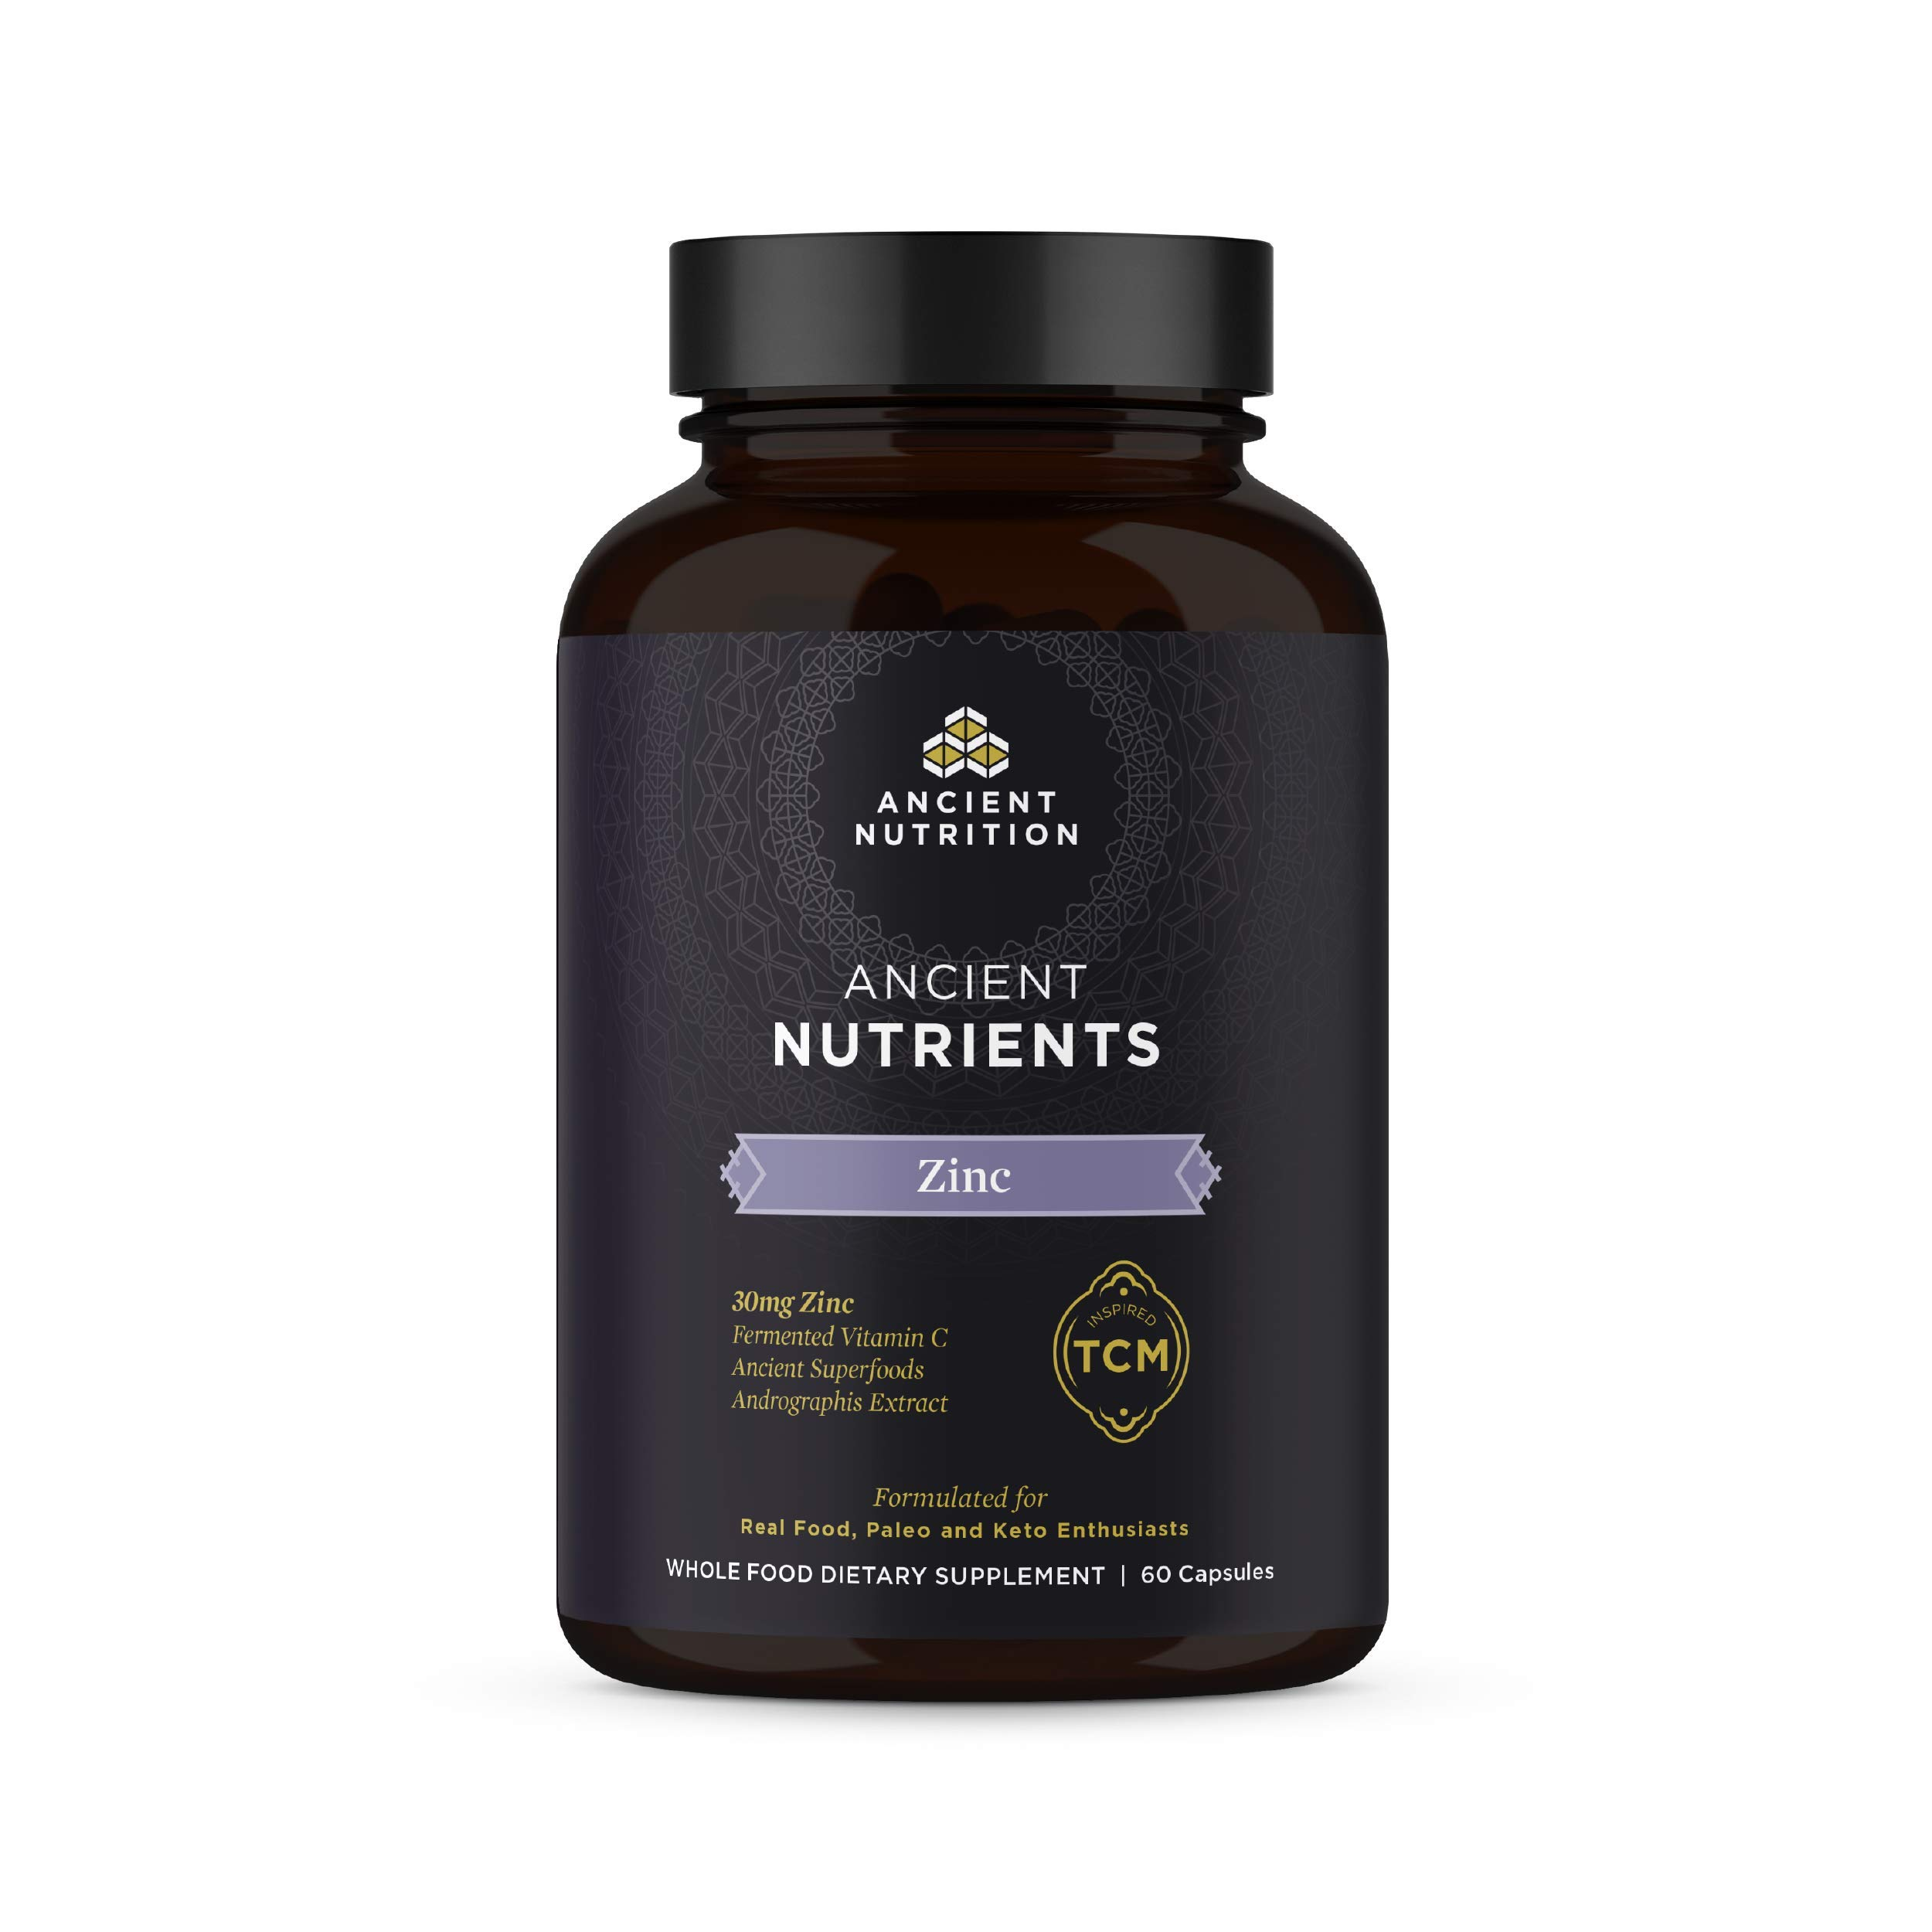 Ancient Nutrition, Ancient Nutrients Zinc - 30mg Zinc, Adaptogenic Herbs, Enzyme Activated, Paleo & Keto Friendly, 60 Capsules